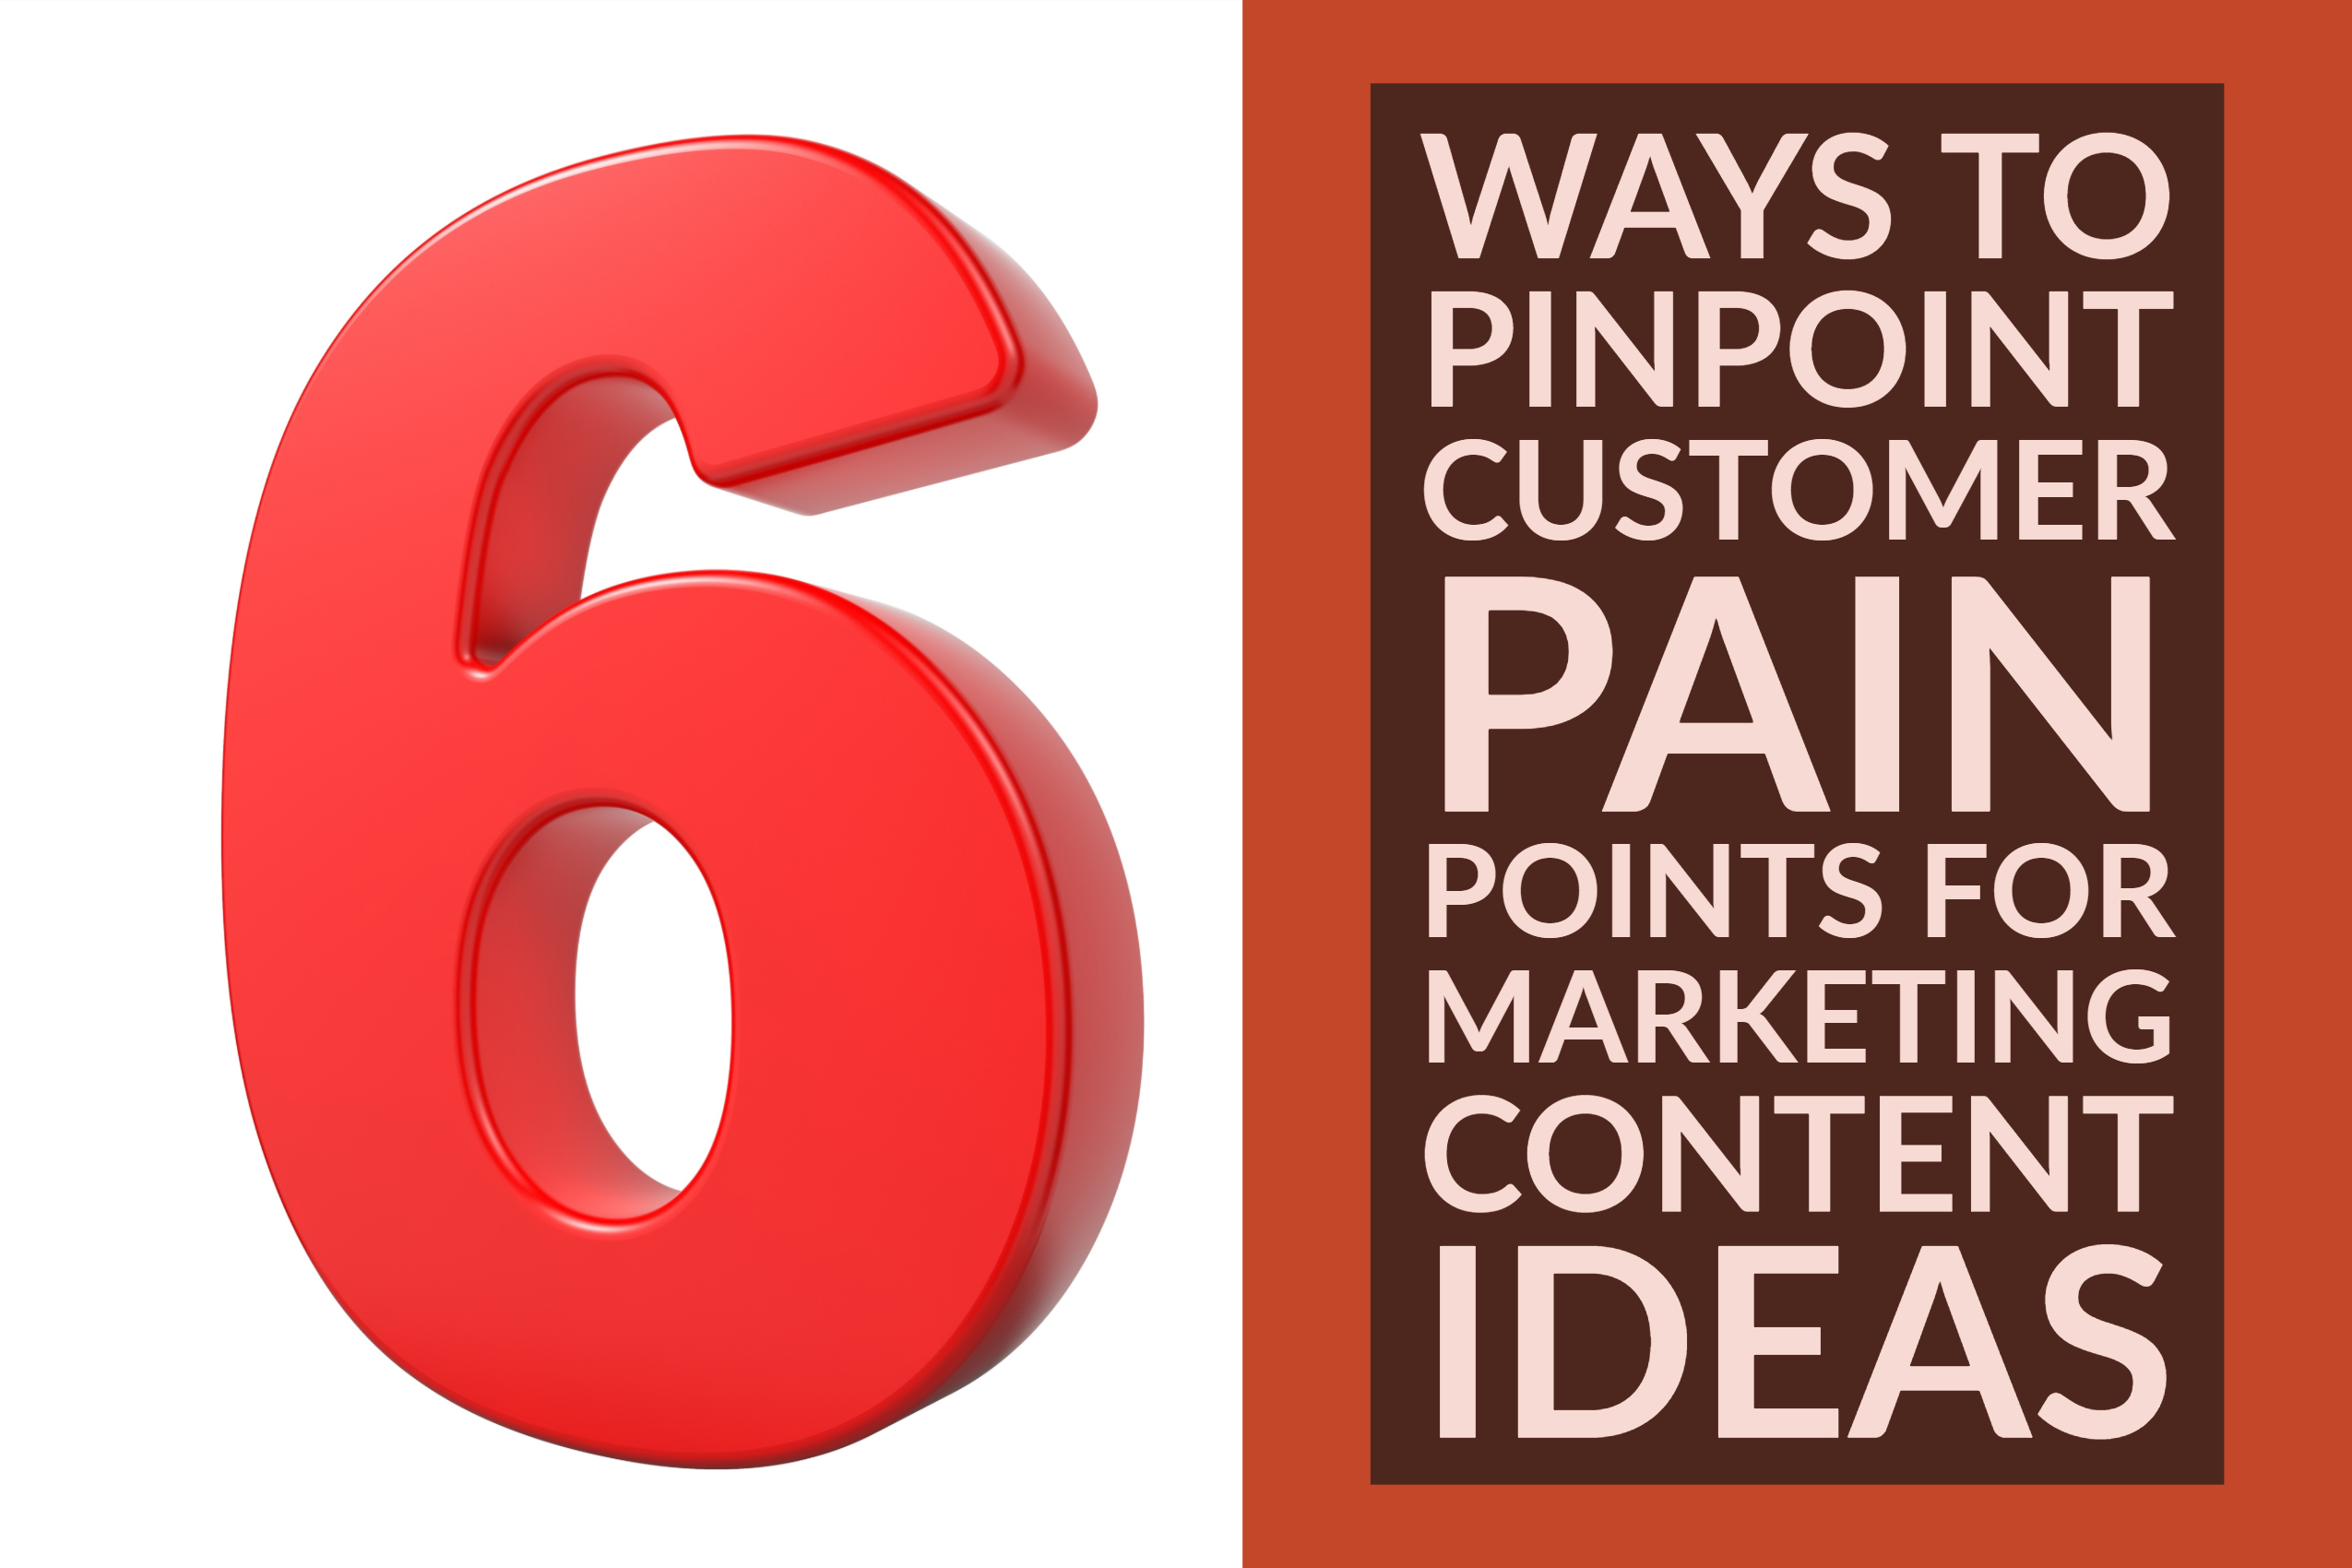 6 Ways To Pinpoint Customer Pain Points For Marketing Content Ideas